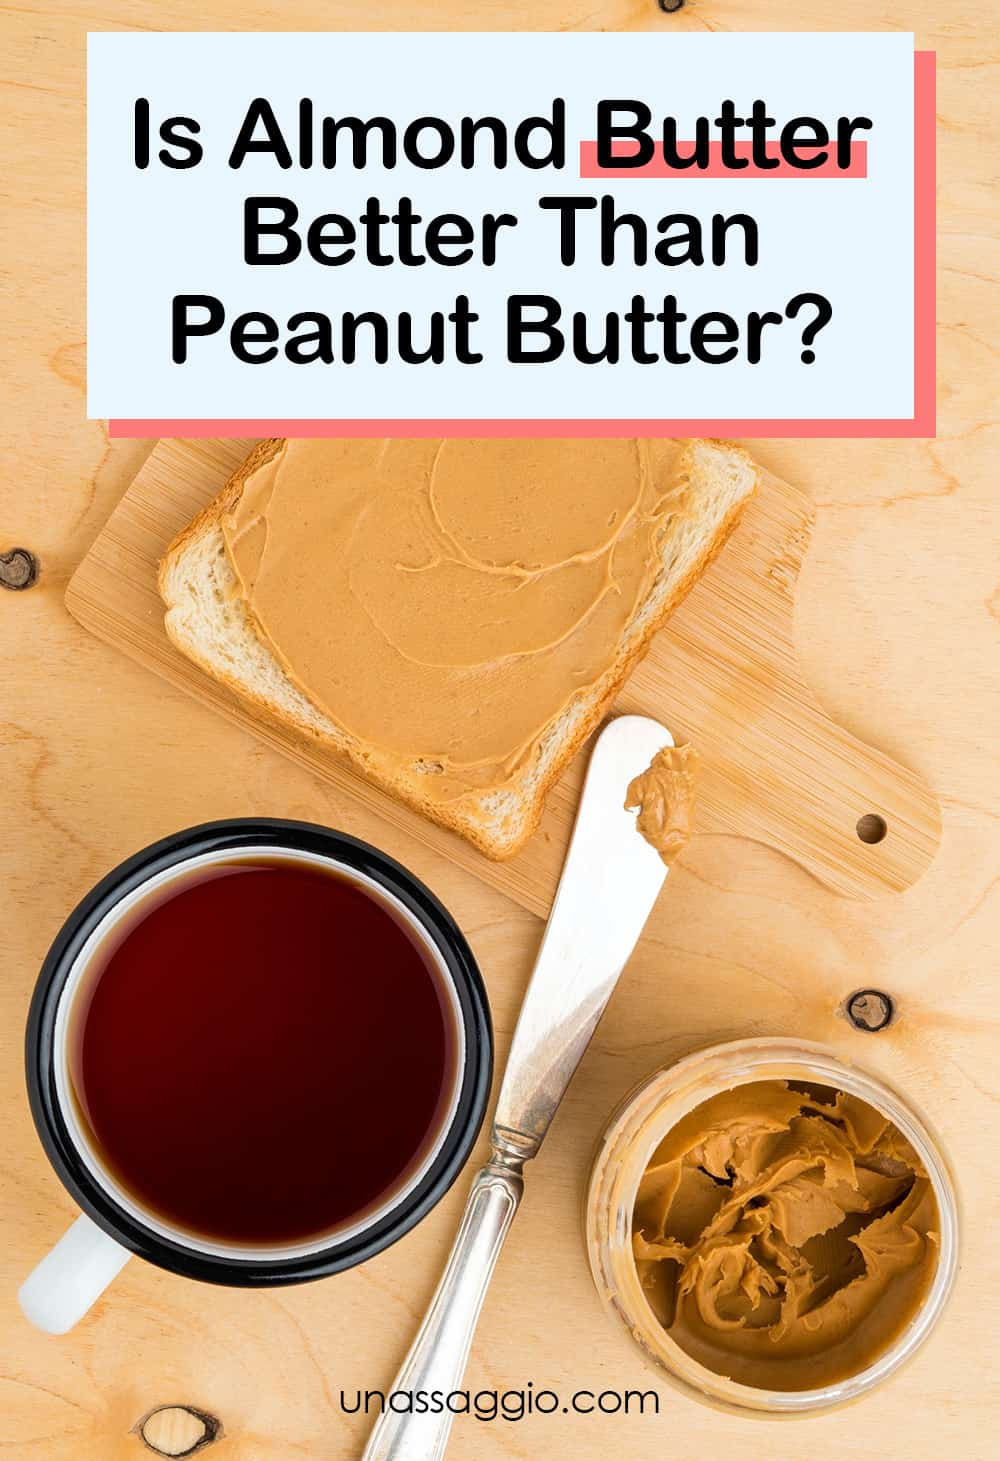 Is Almond Butter Better Than Peanut Butter?